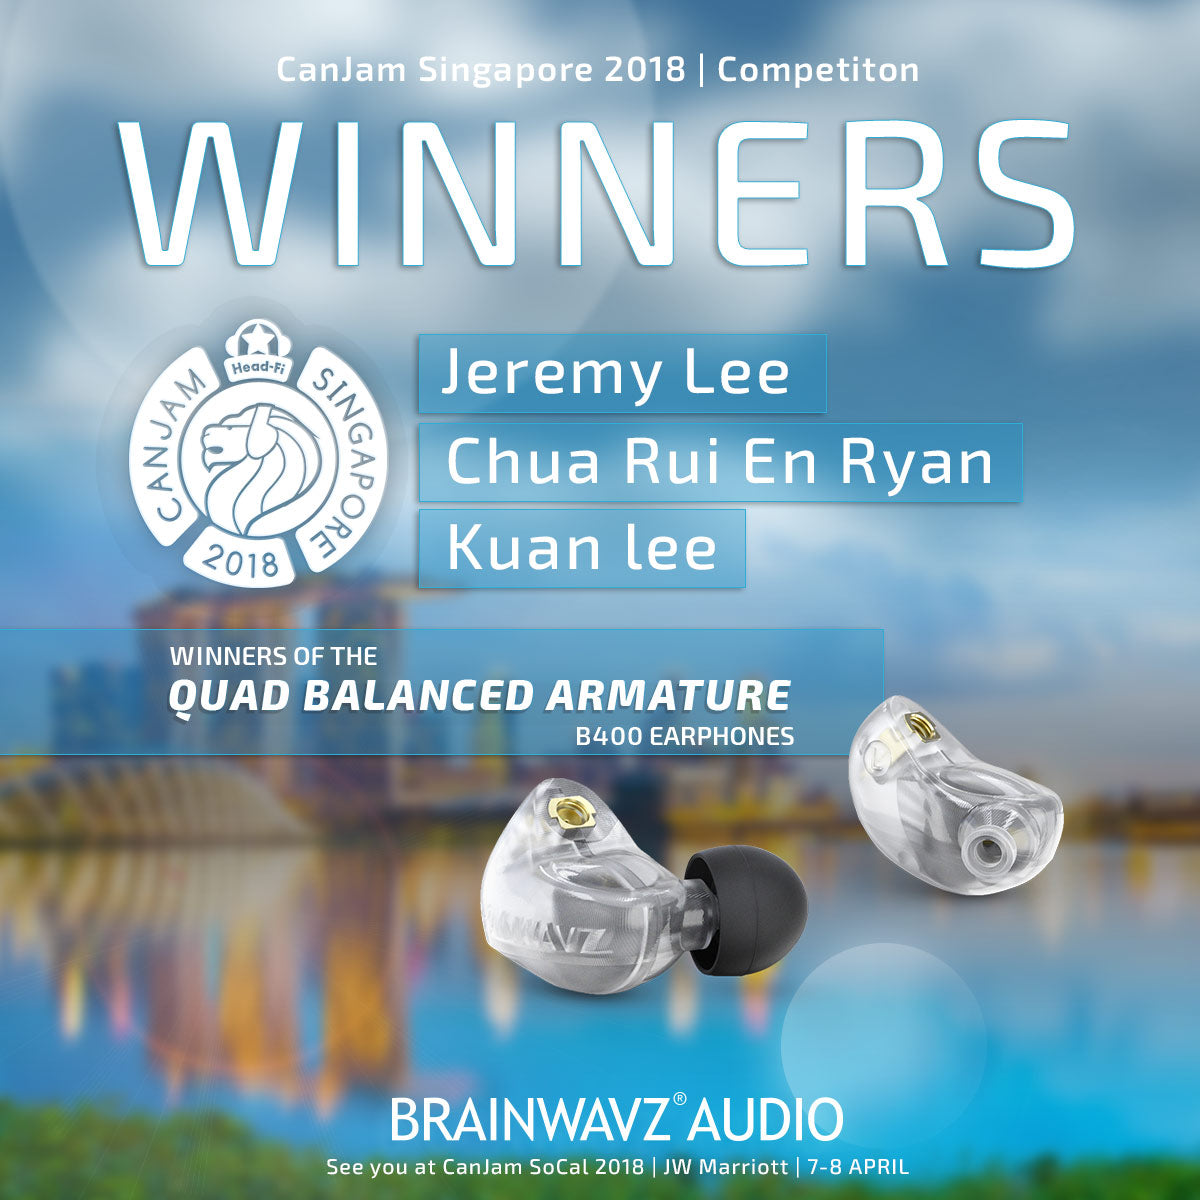 Brainwavz Singapore Competition Winners